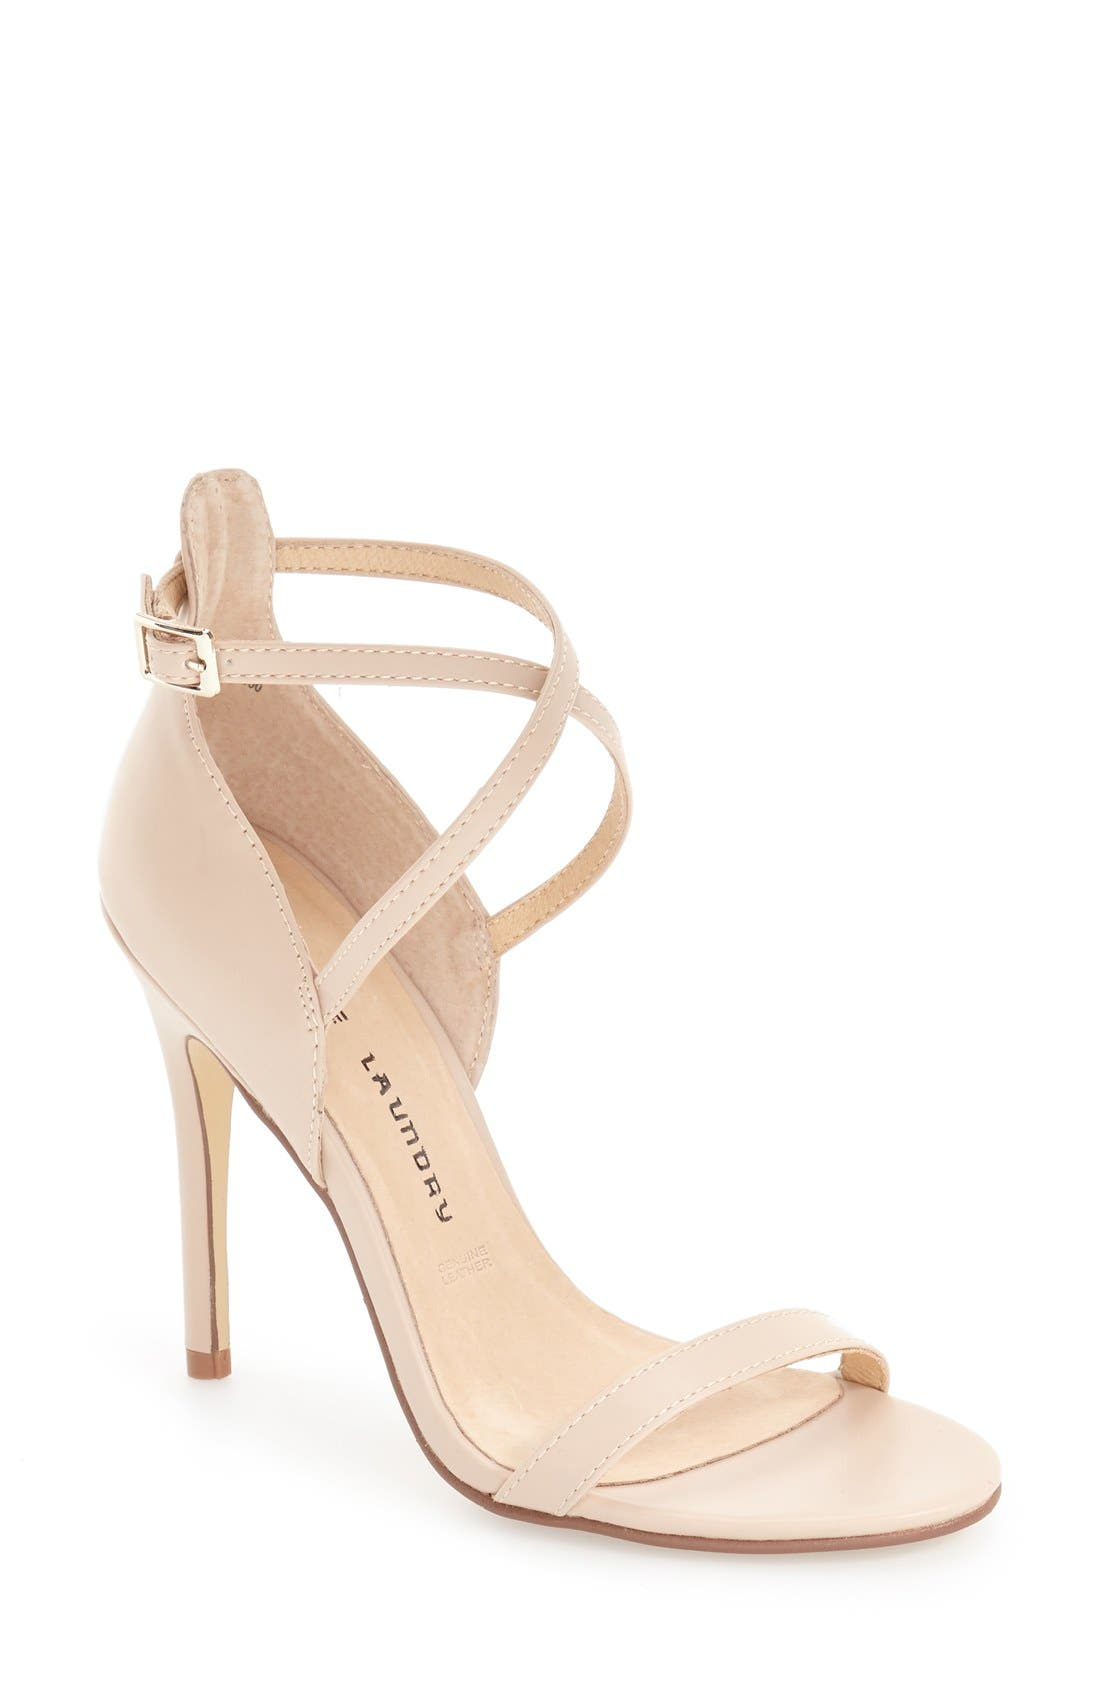 Main Image - Chinese Laundry 'Lavelle' Ankle Strap Sandal (Women)